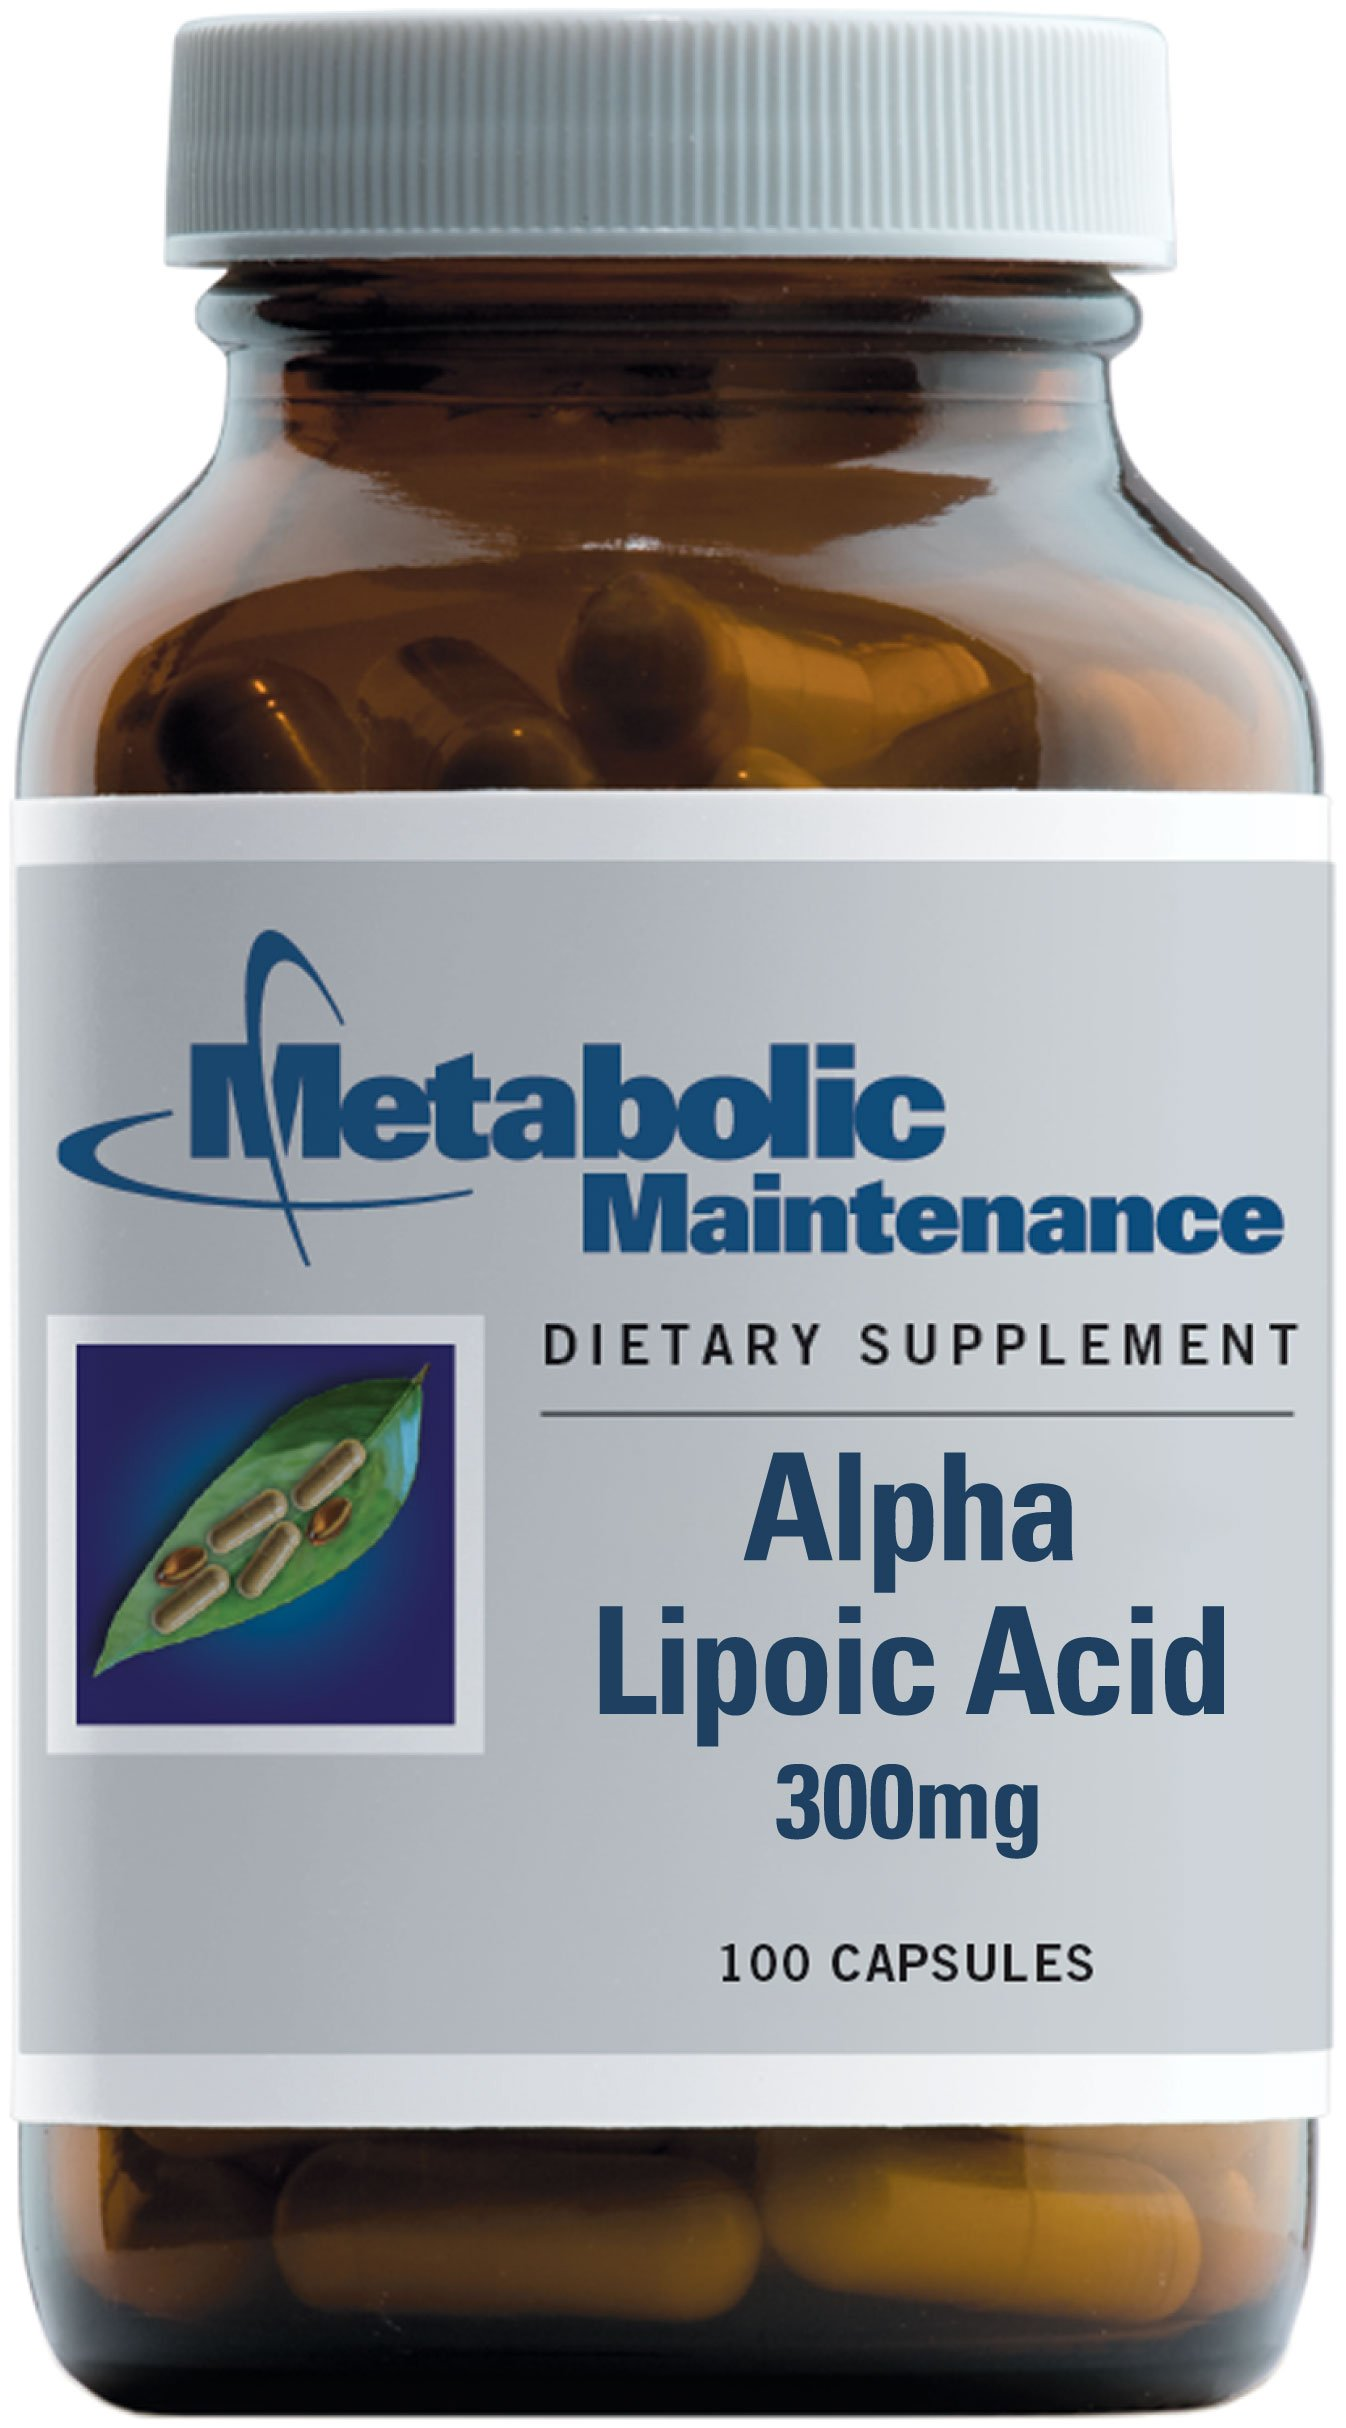 Metabolic Maintenance - Alpha Lipoic Acid - 300 mg, Antioxidant, 100 Capsules